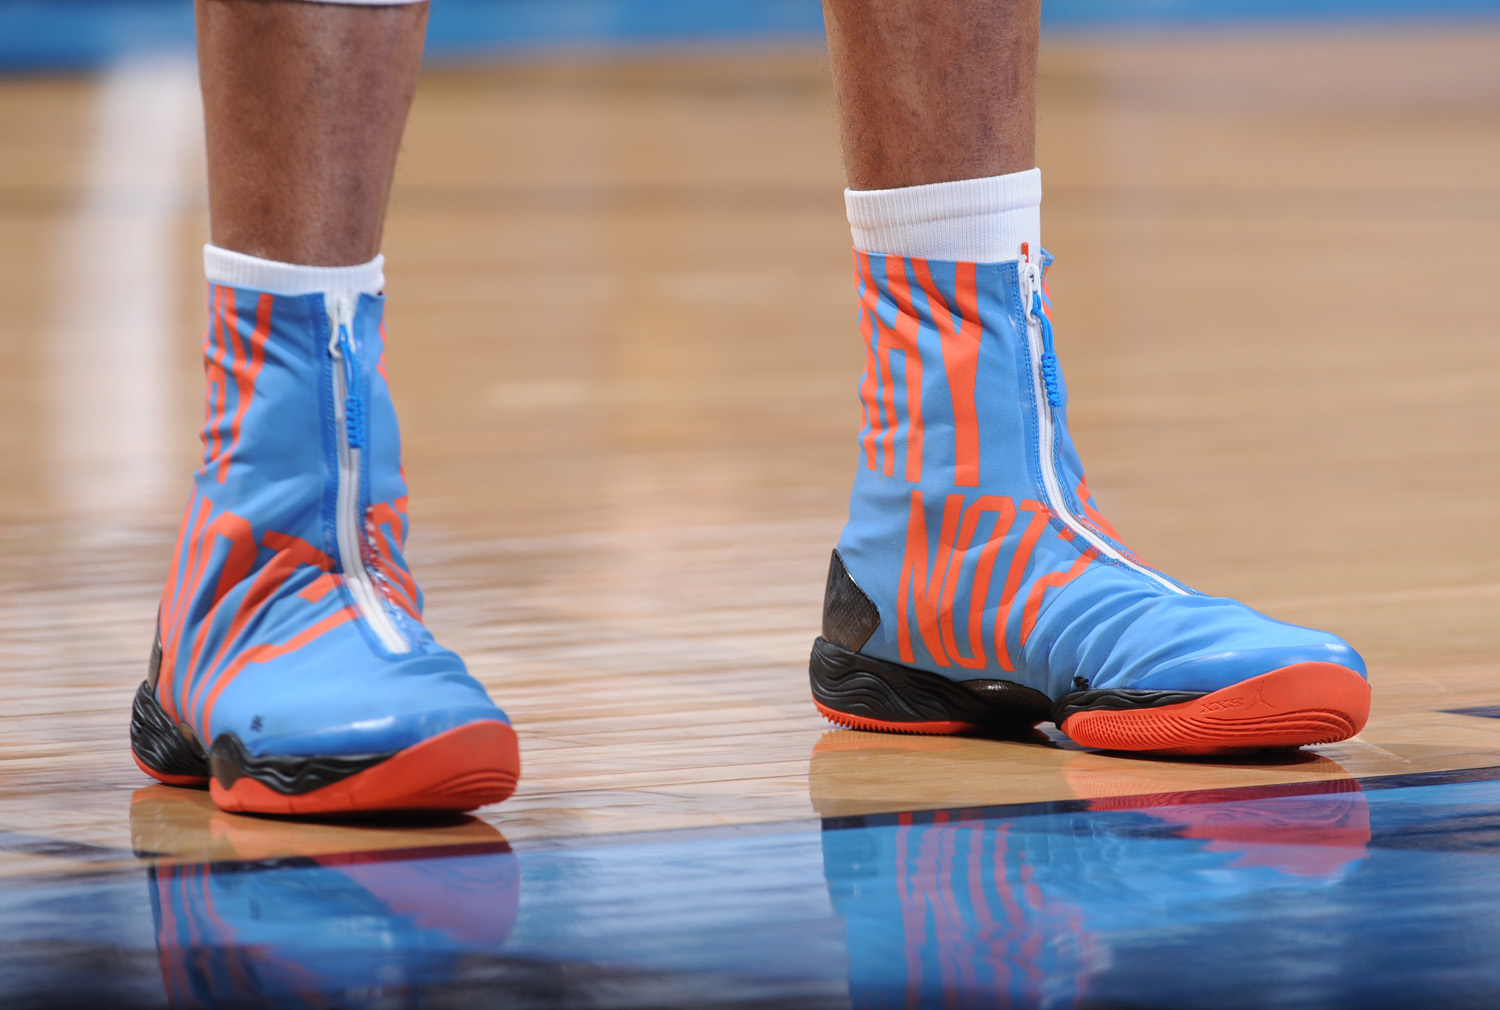 bbe1b66d4f0 Russell Westbrook Brought Back the Air Jordan XX8 - WearTesters